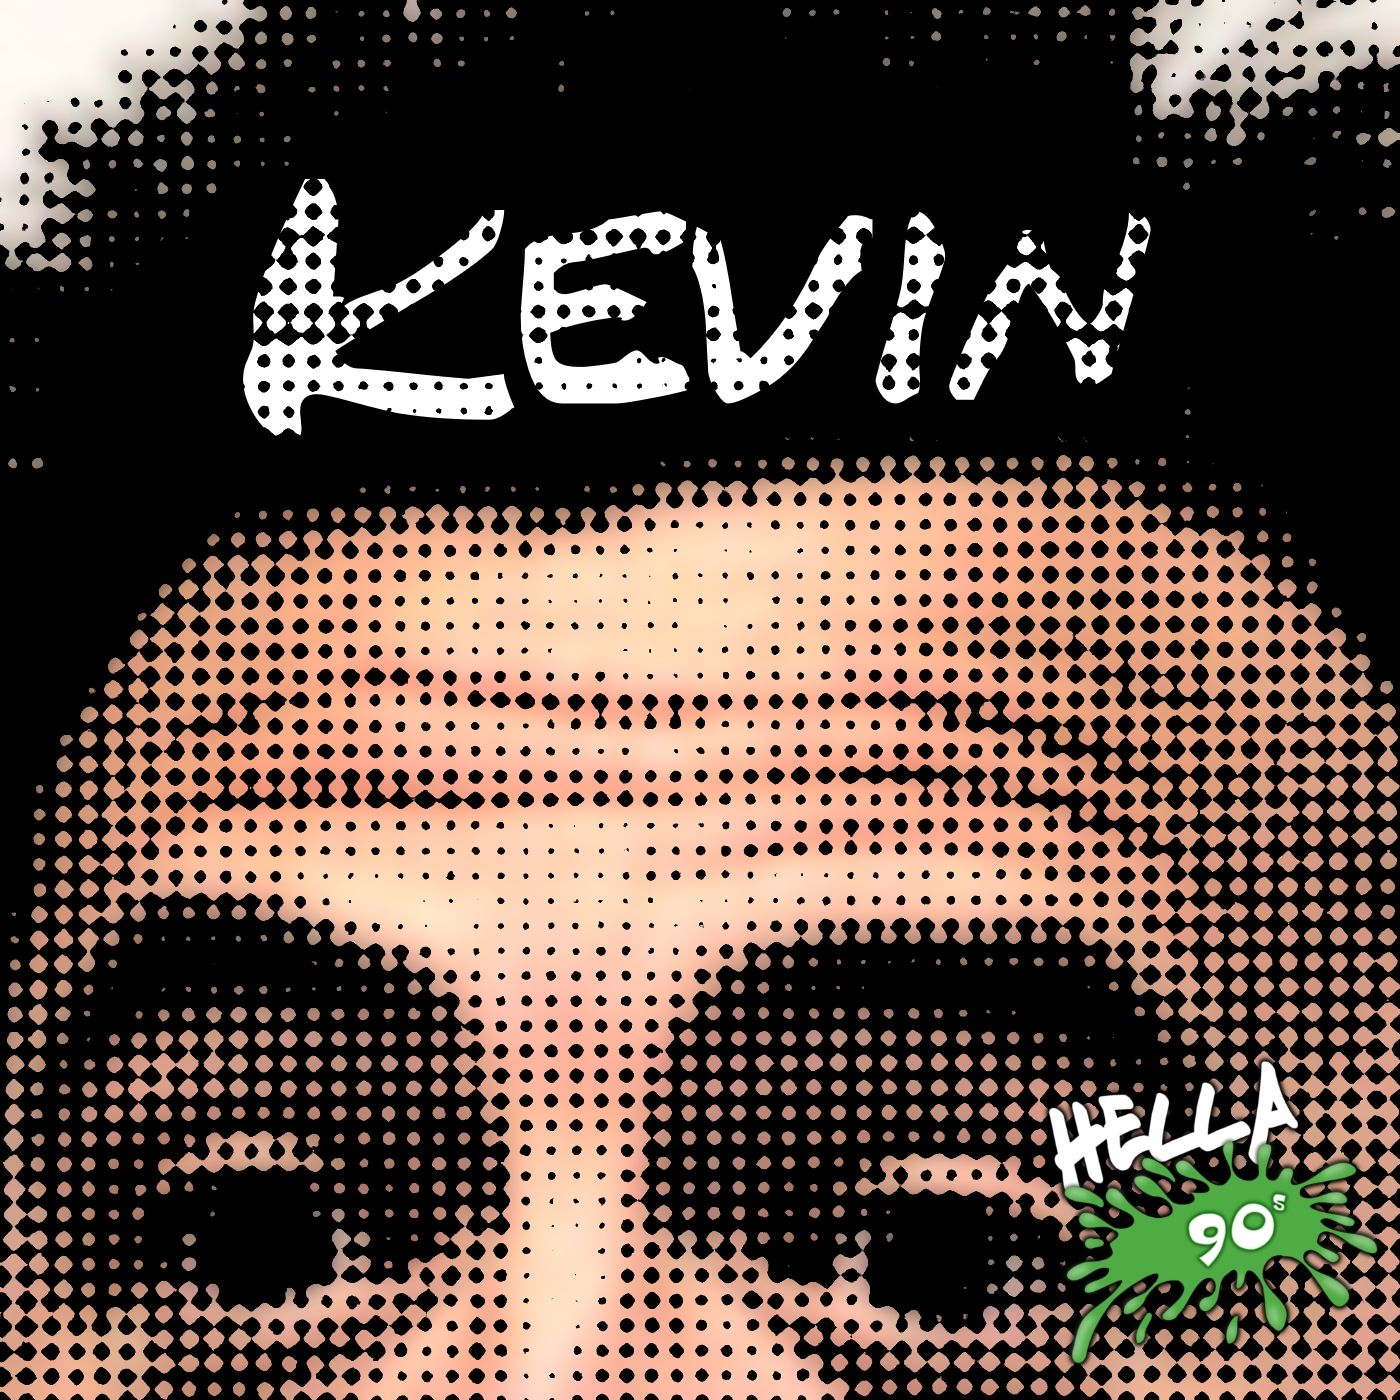 Kevin Smith: Snoochie Boochies